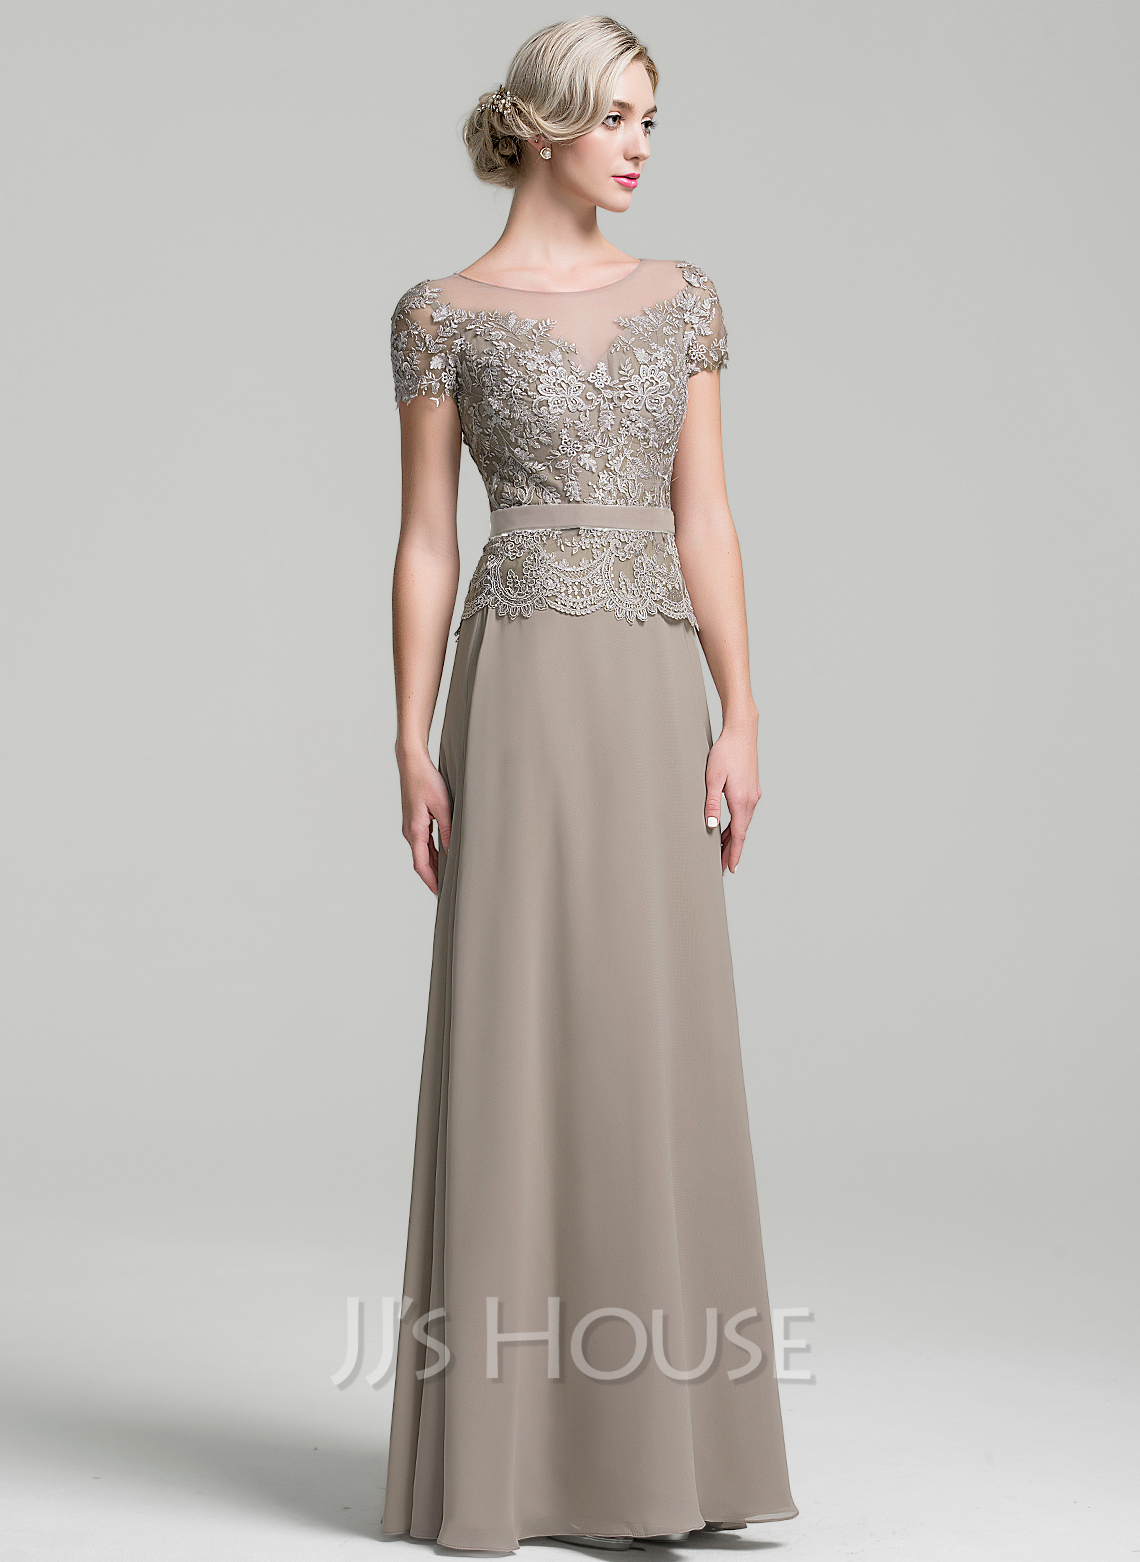 A Line Scoop Neck Floor Length Chiffon Mother Of The Bride